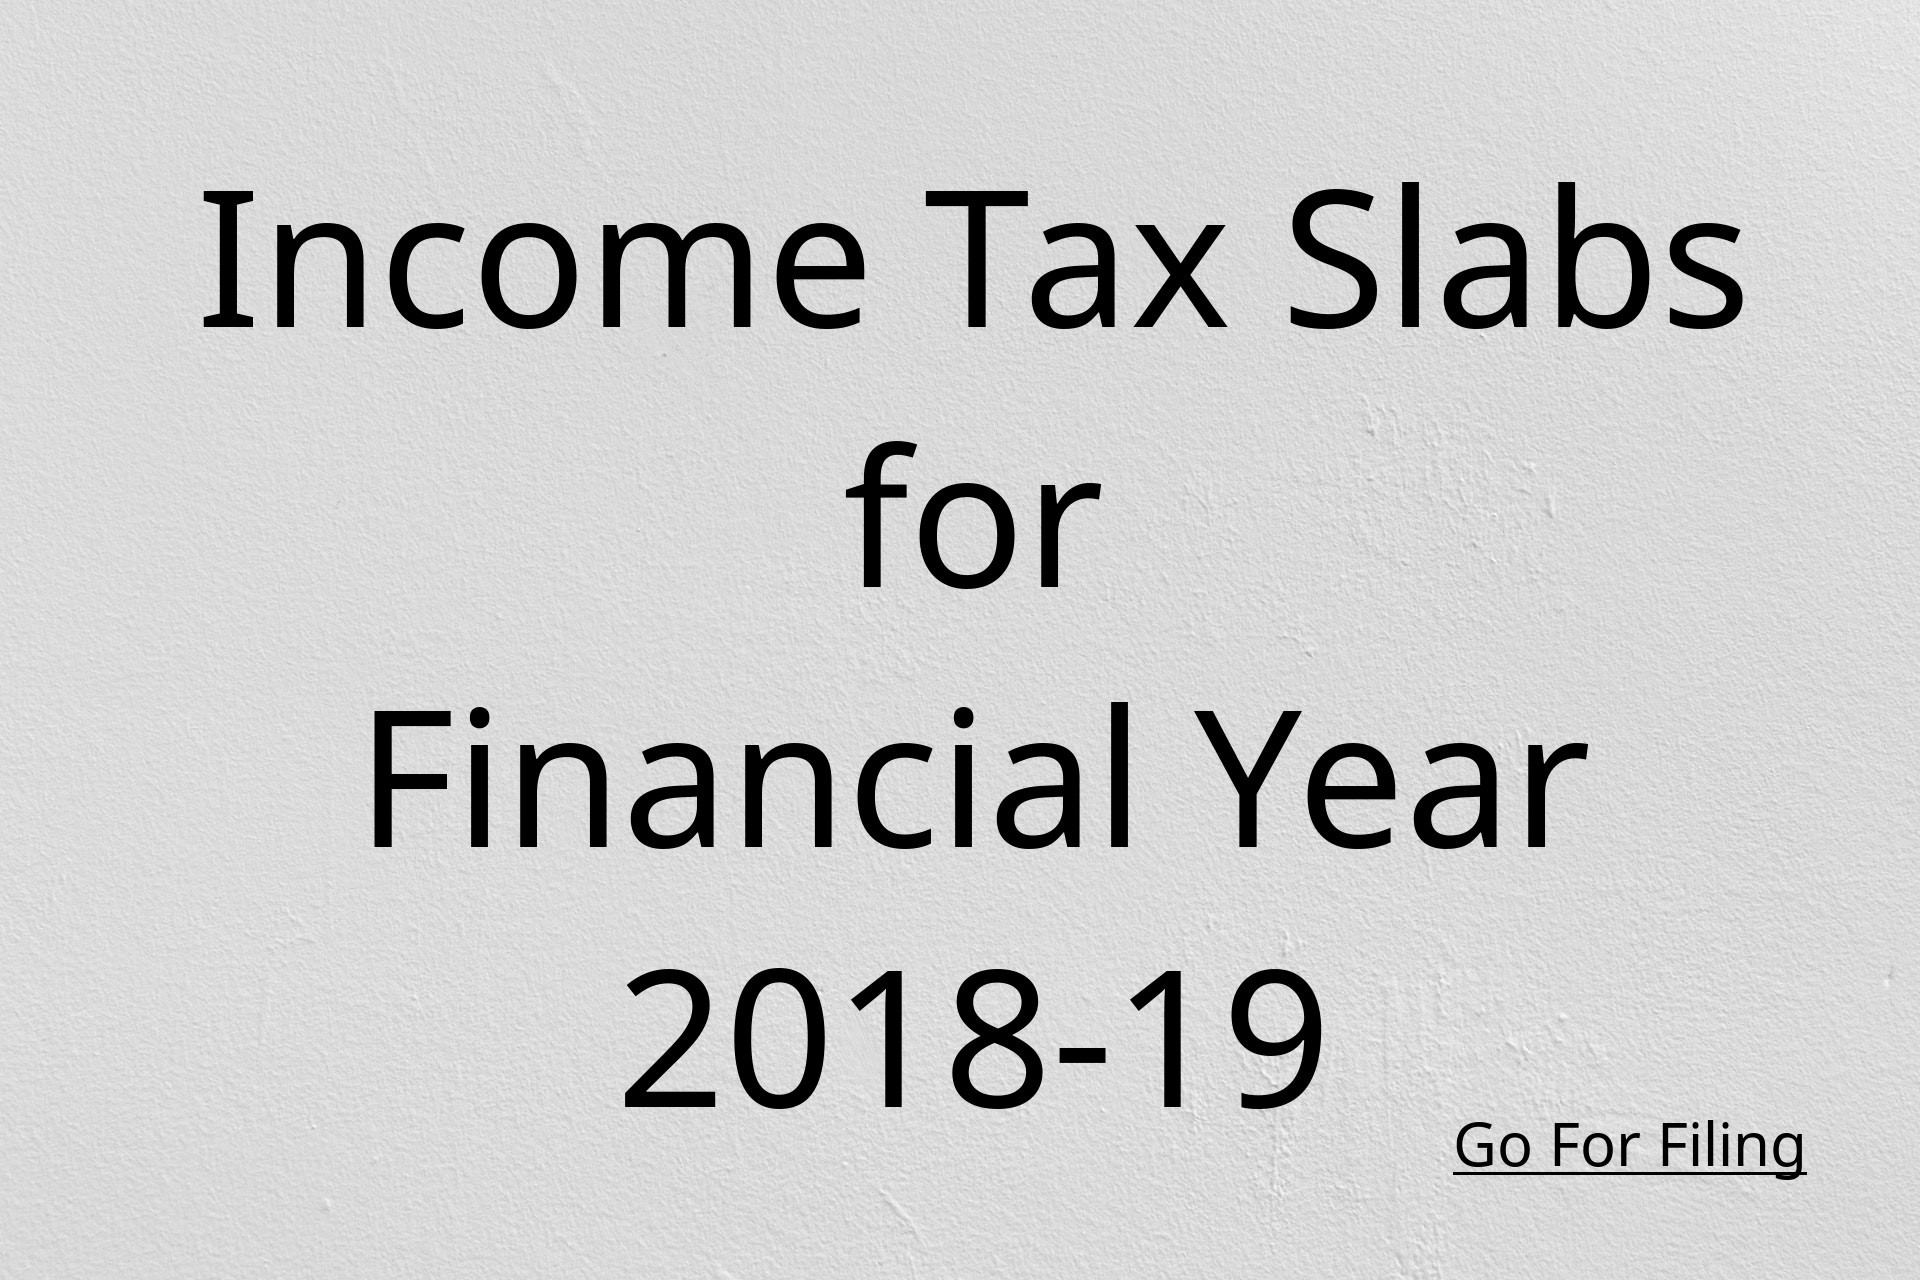 Income Tax Slabs Fy 18-19 - Go For Filing  Fin Year 18-19